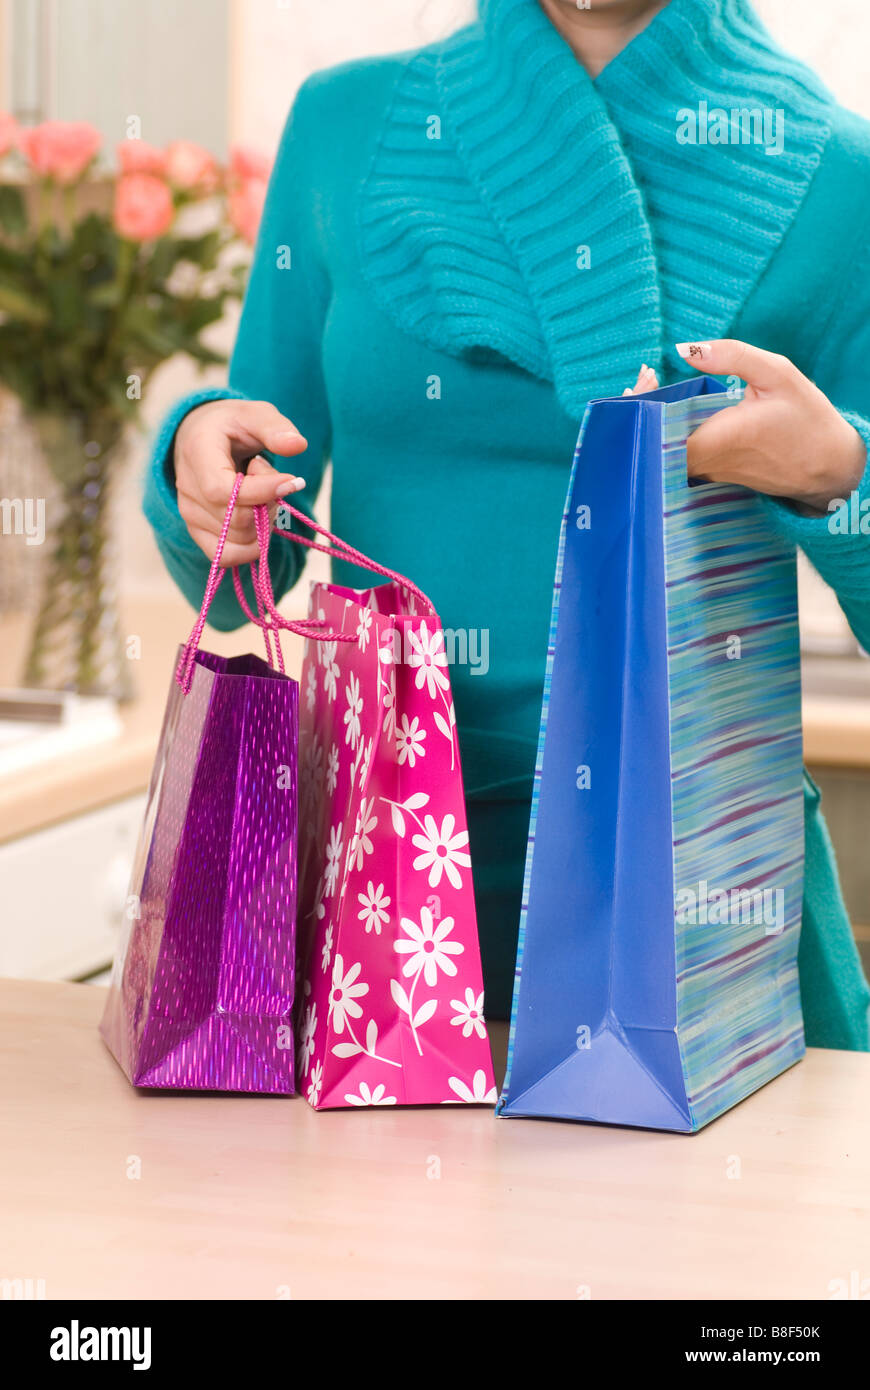 Woman arriving home with shopping bags - Stock Image